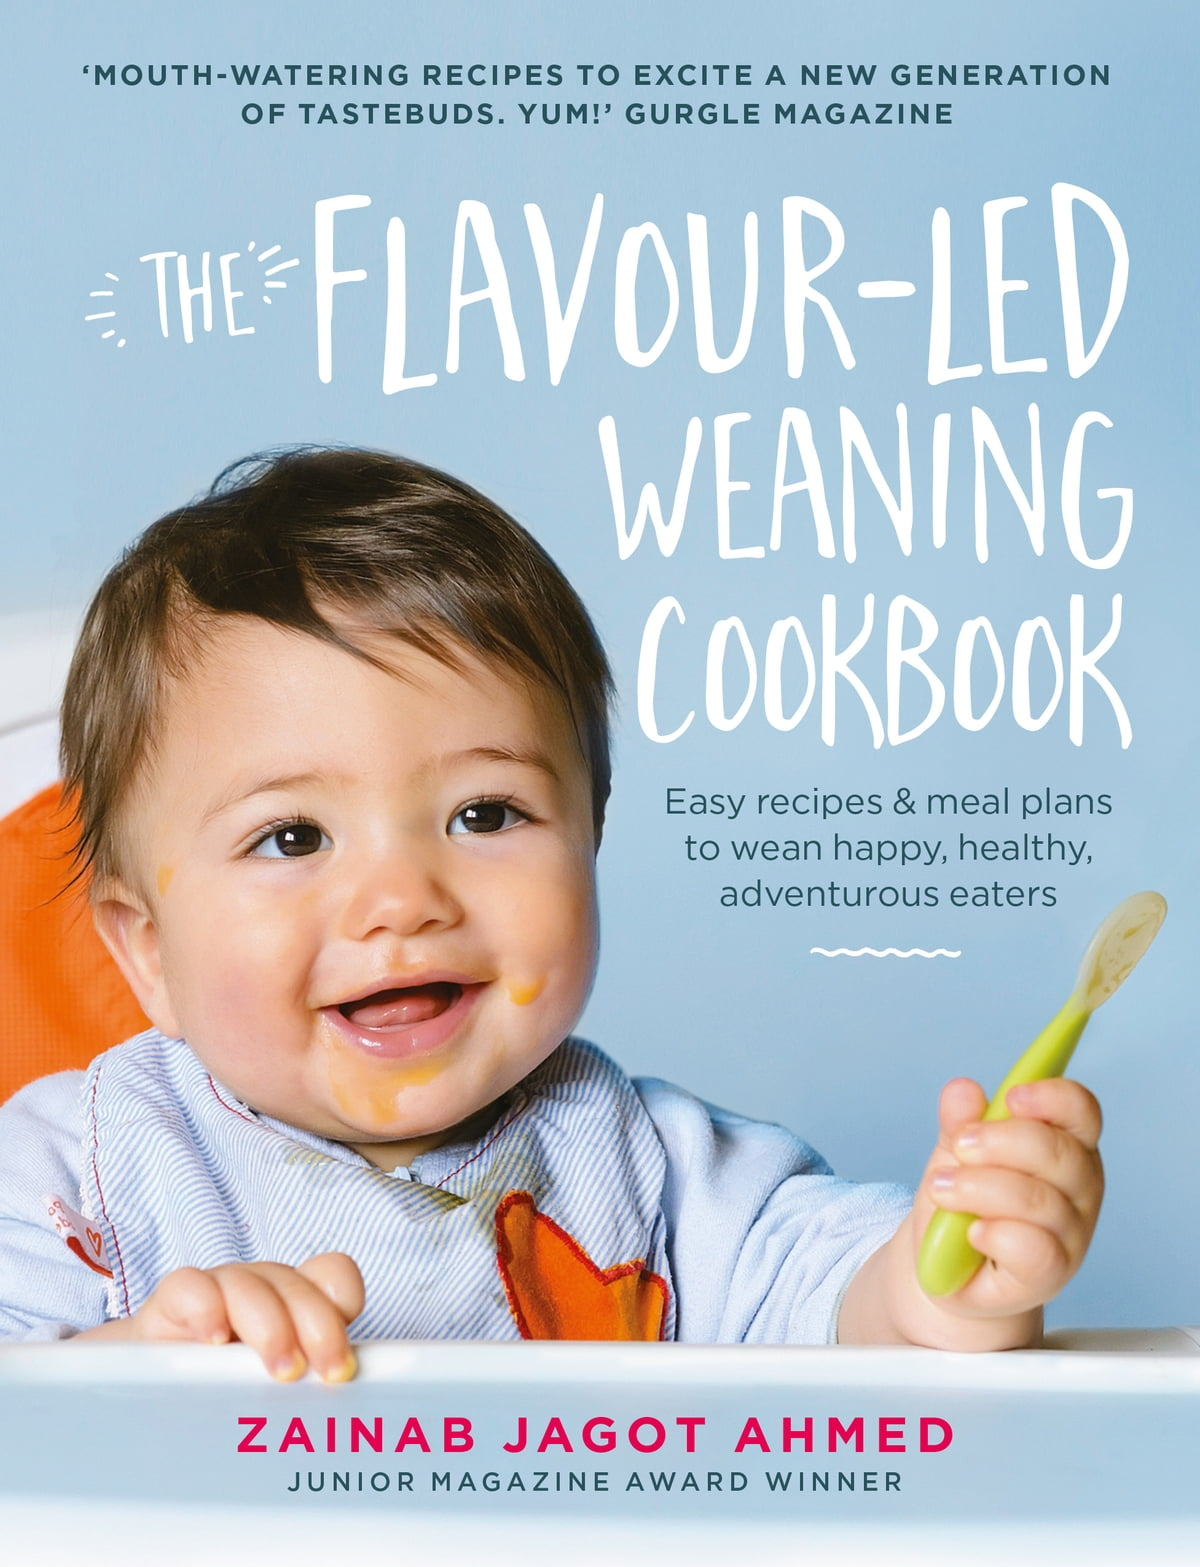 The Flavour Led Weaning Cookbook Ebook By Zainab Jagot Ahmed Booster Blw 60 9781473529410 Rakuten Kobo